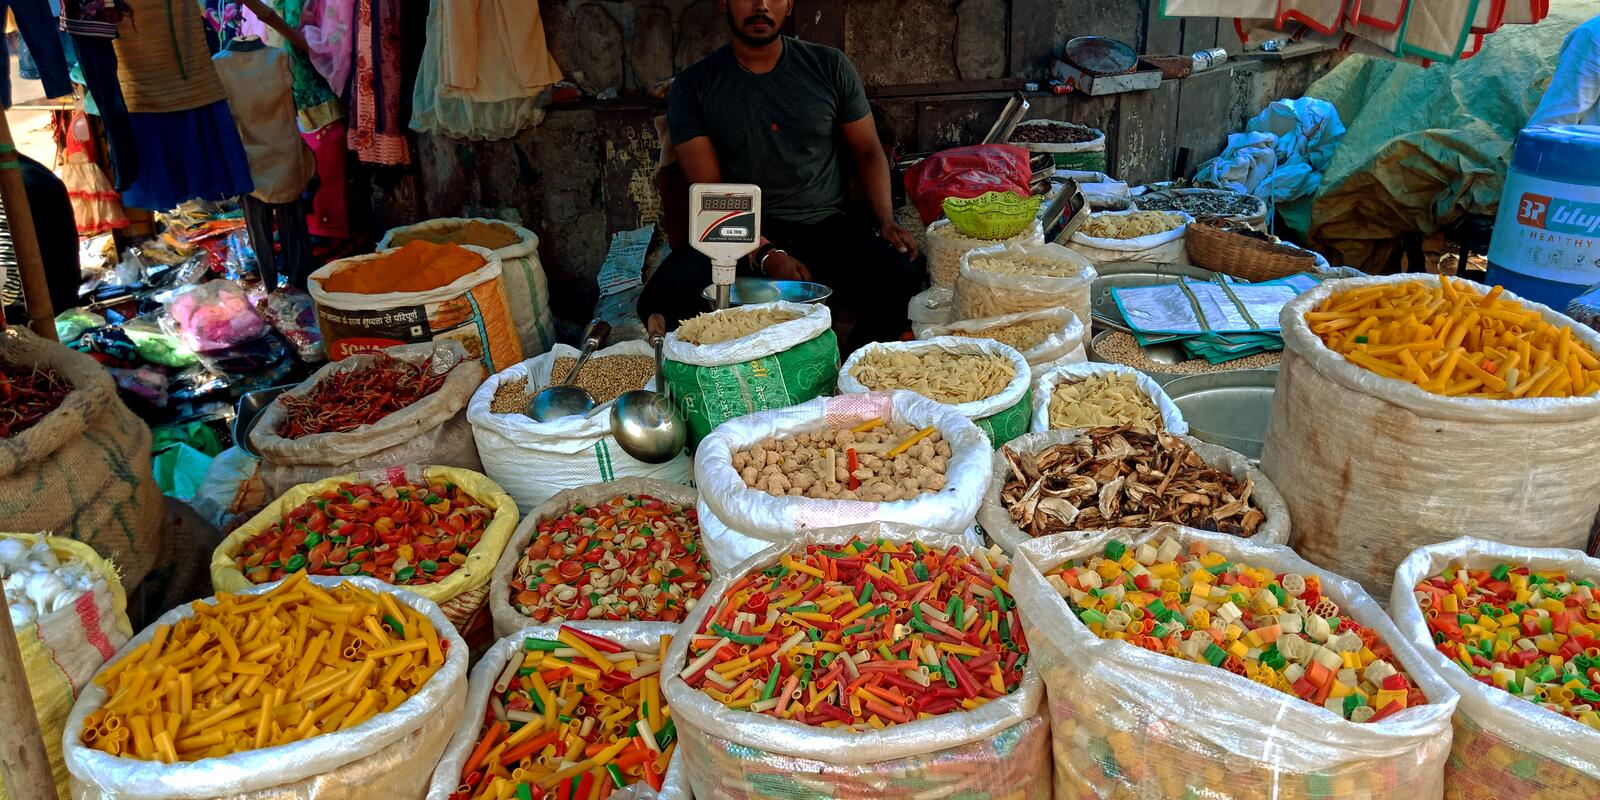 Indian snacks. Food, wholesale, store, village, woman, carried, vegetable, container, head, local, market, farmers, selling, vegetables, street, empty, basket royalty free stock photo